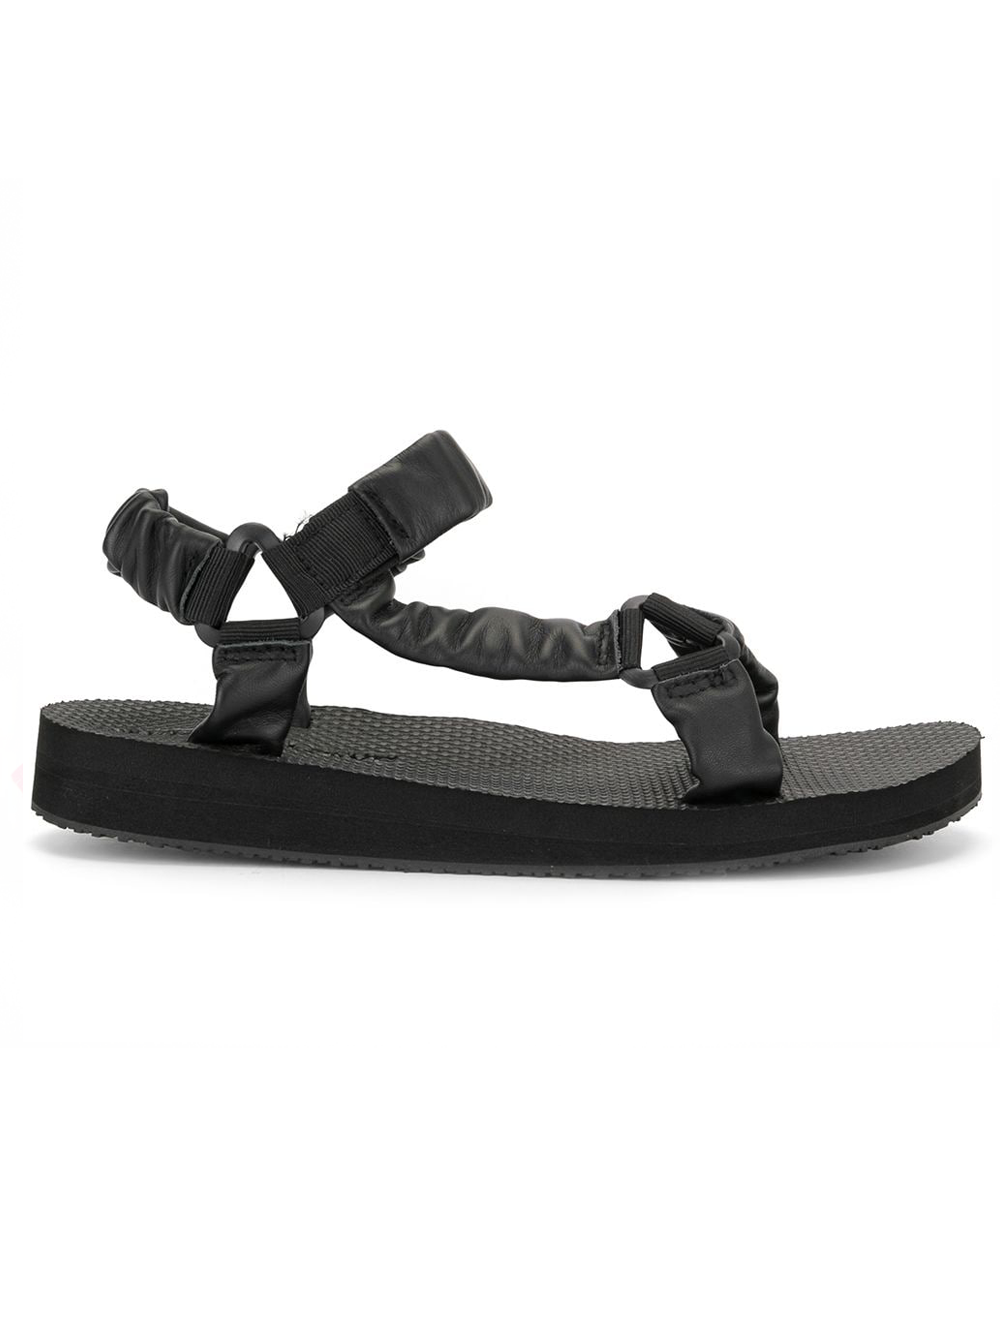 Arizona love, trecking sandals, Sommerschuhe,